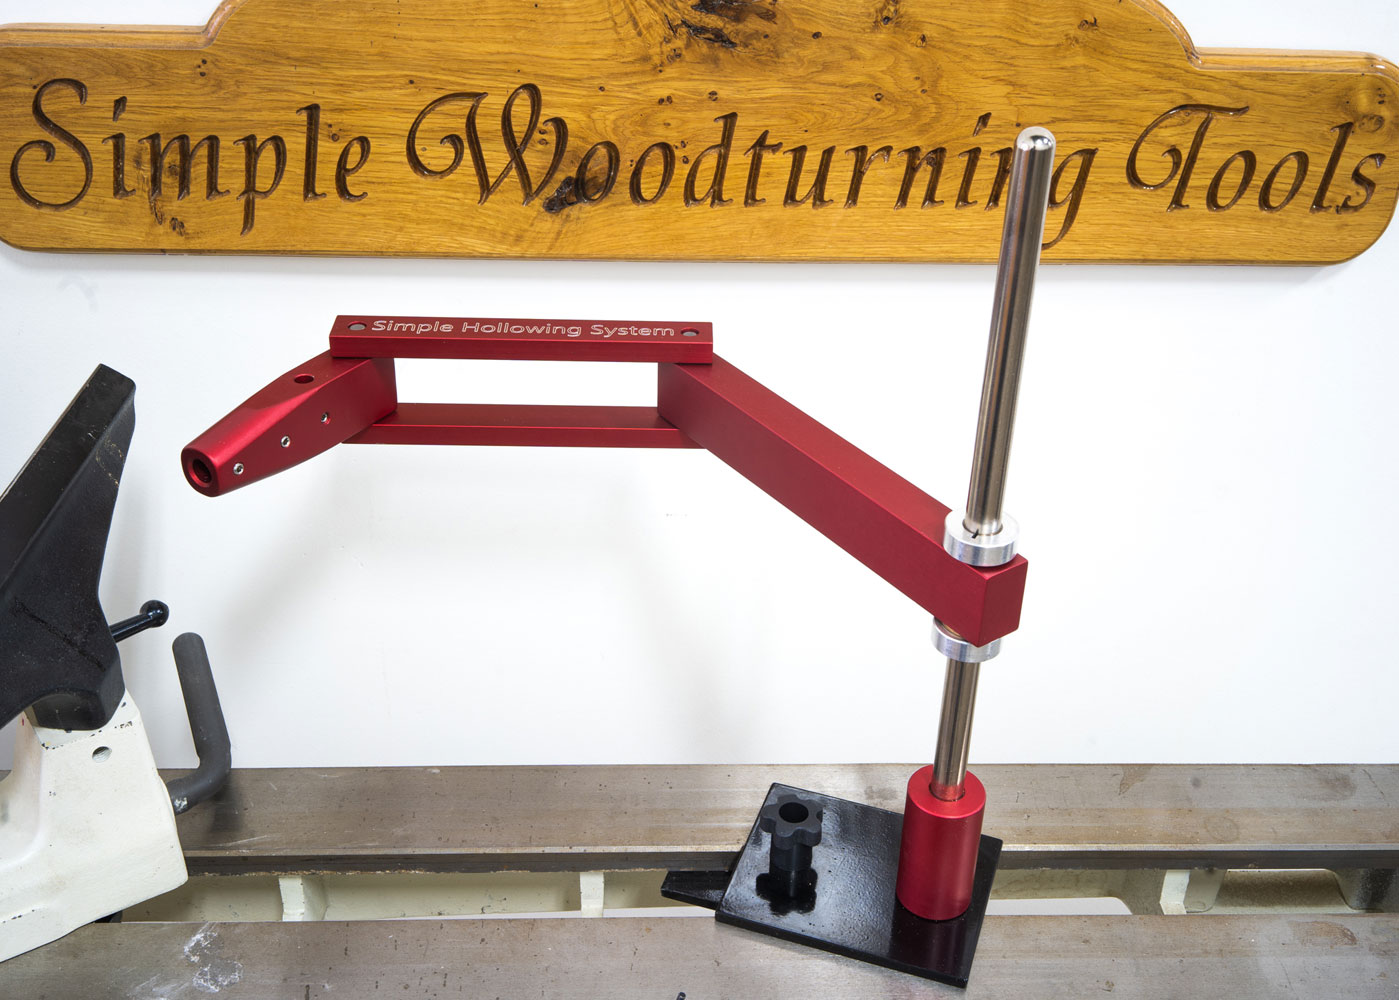 Simple Hollowing System for Wood Lathe